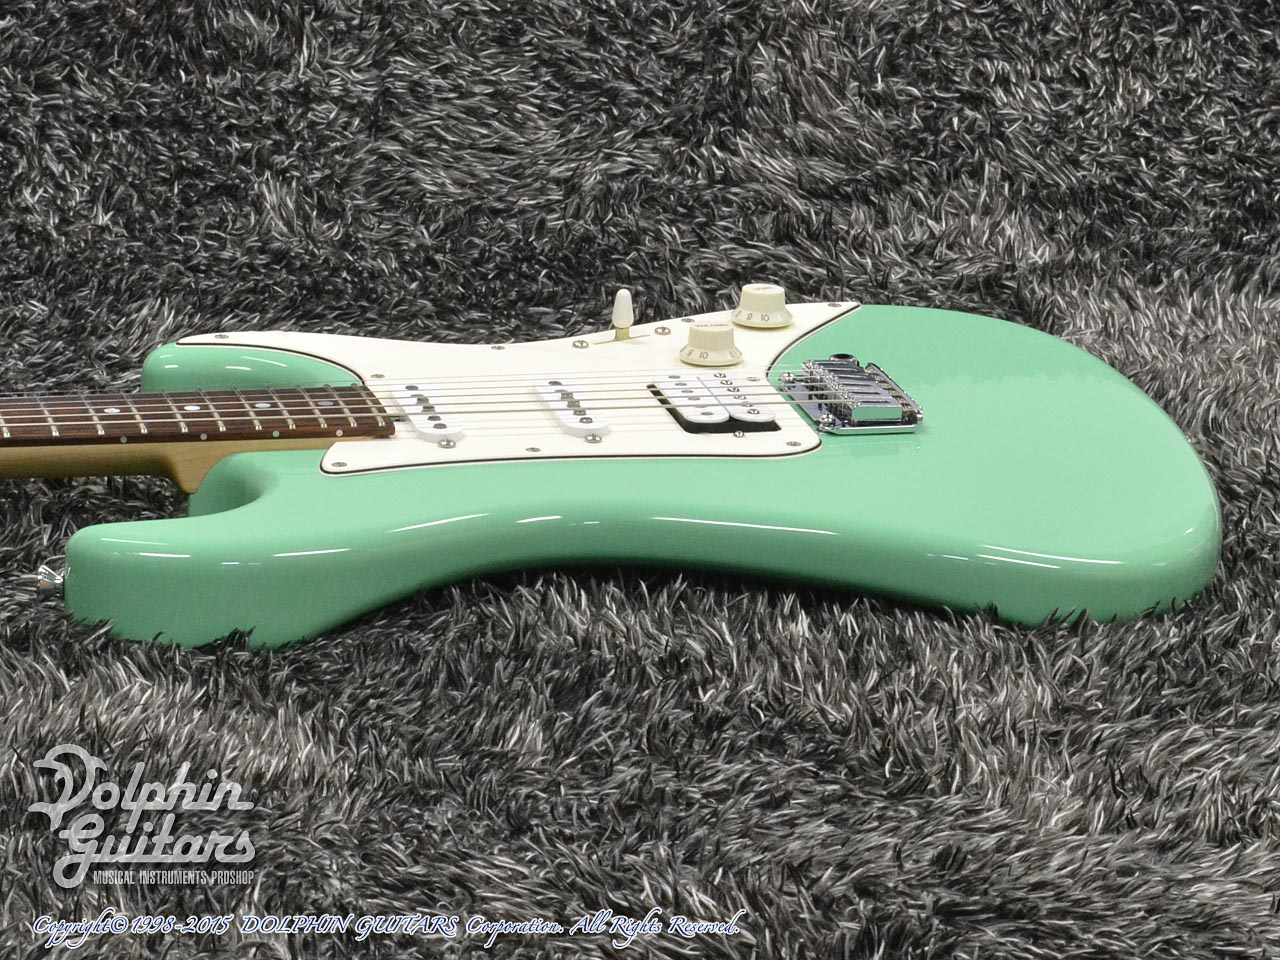 TOPROCK GUITARS: ST-G6 Classic (Sea Form Green) (2)